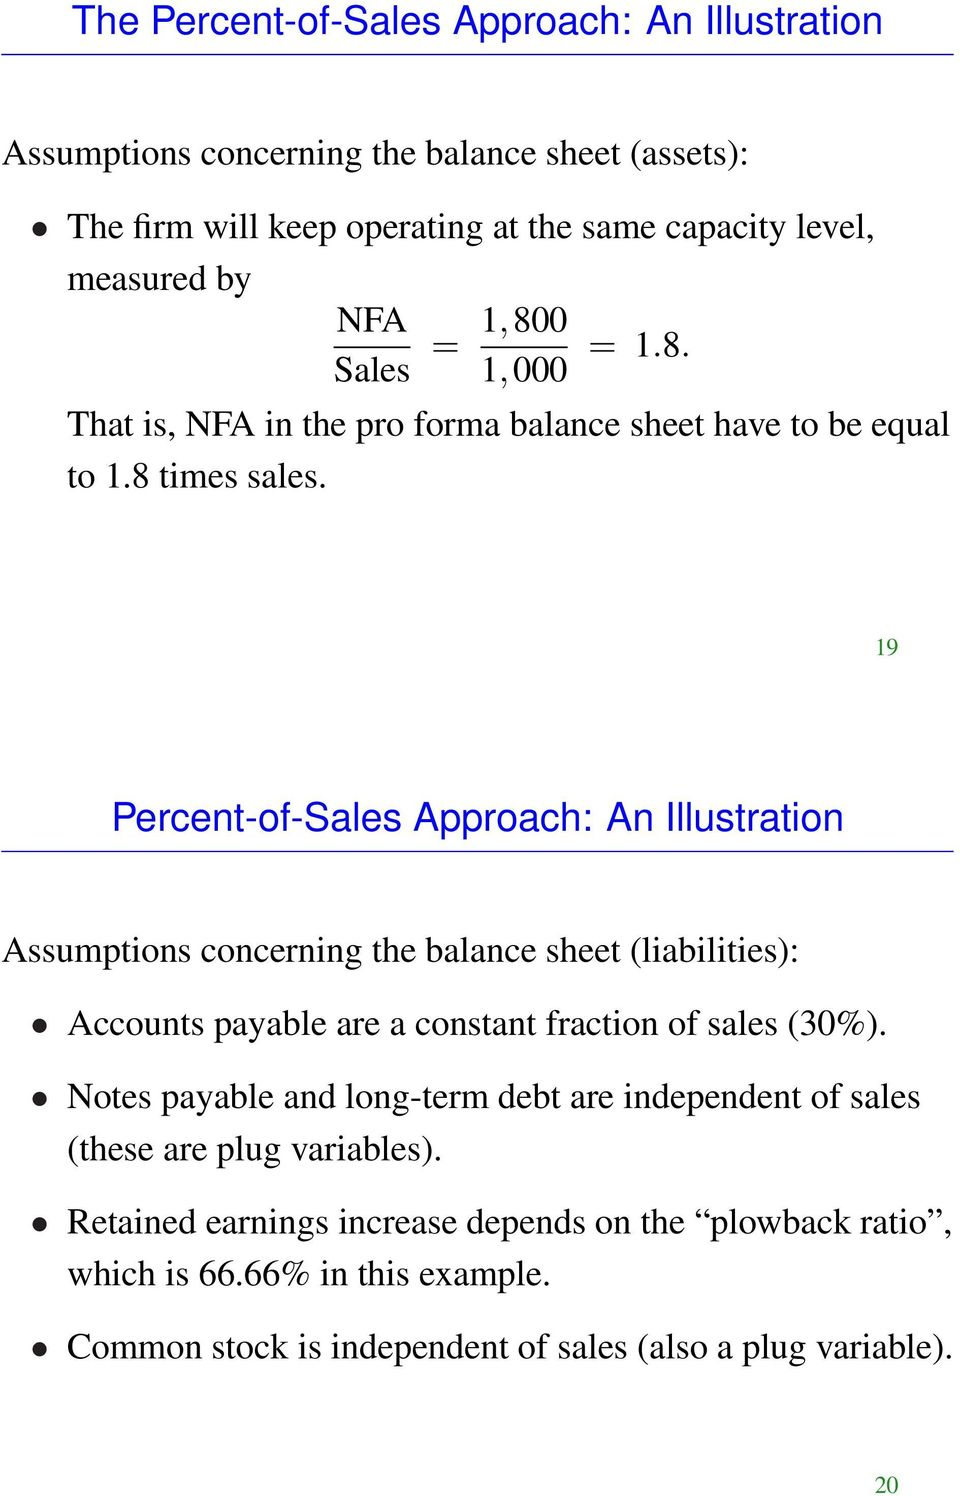 19 Percent-of-Sales Approach: An Illustration Assumptions concerning the balance sheet (liabilities): Accounts payable are a constant fraction of sales (30%).